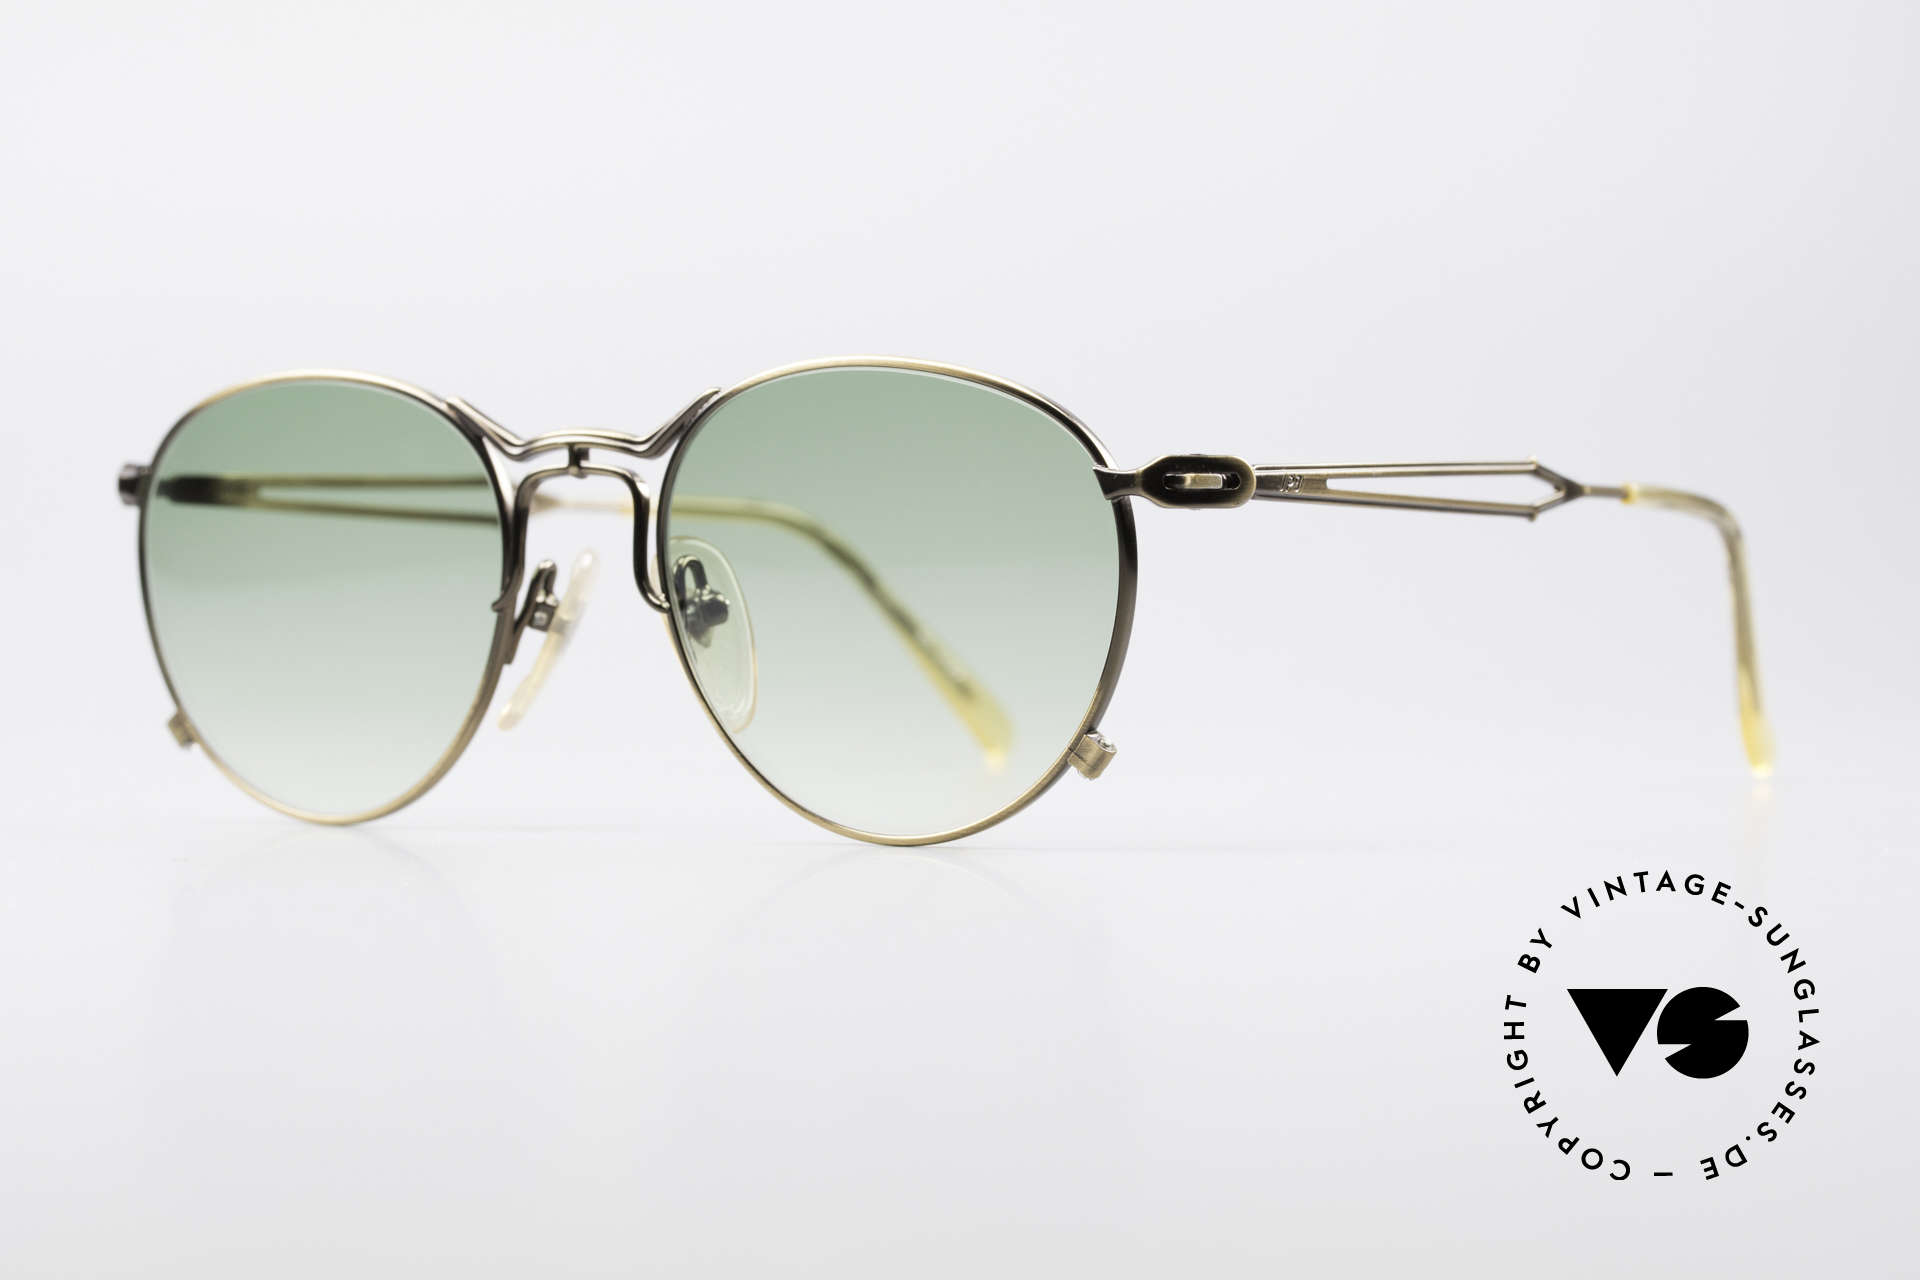 """Jean Paul Gaultier 55-2177 True Vintage No Retro Frame, also called by Gaultier: """"burnt gold"""" or """"antique gold"""", Made for Men and Women"""